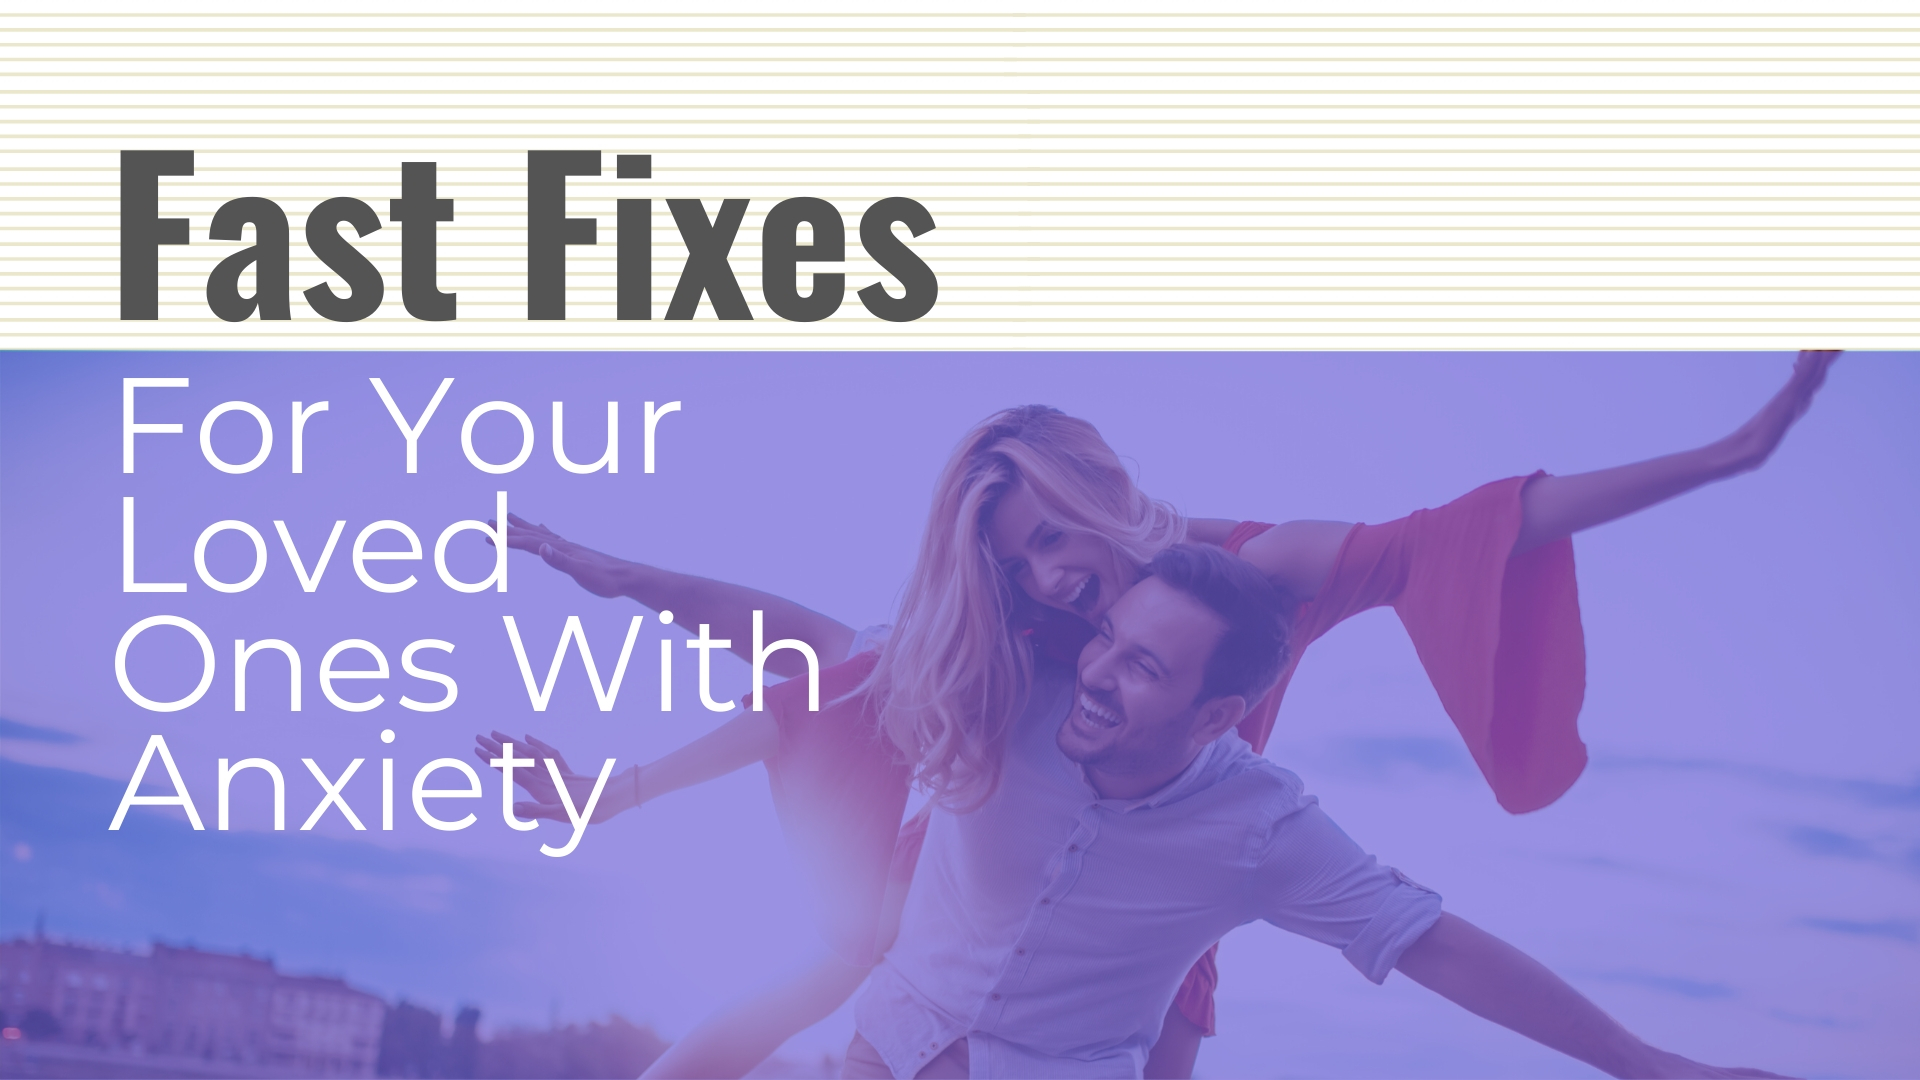 fast fixes for loved ones with anxiety